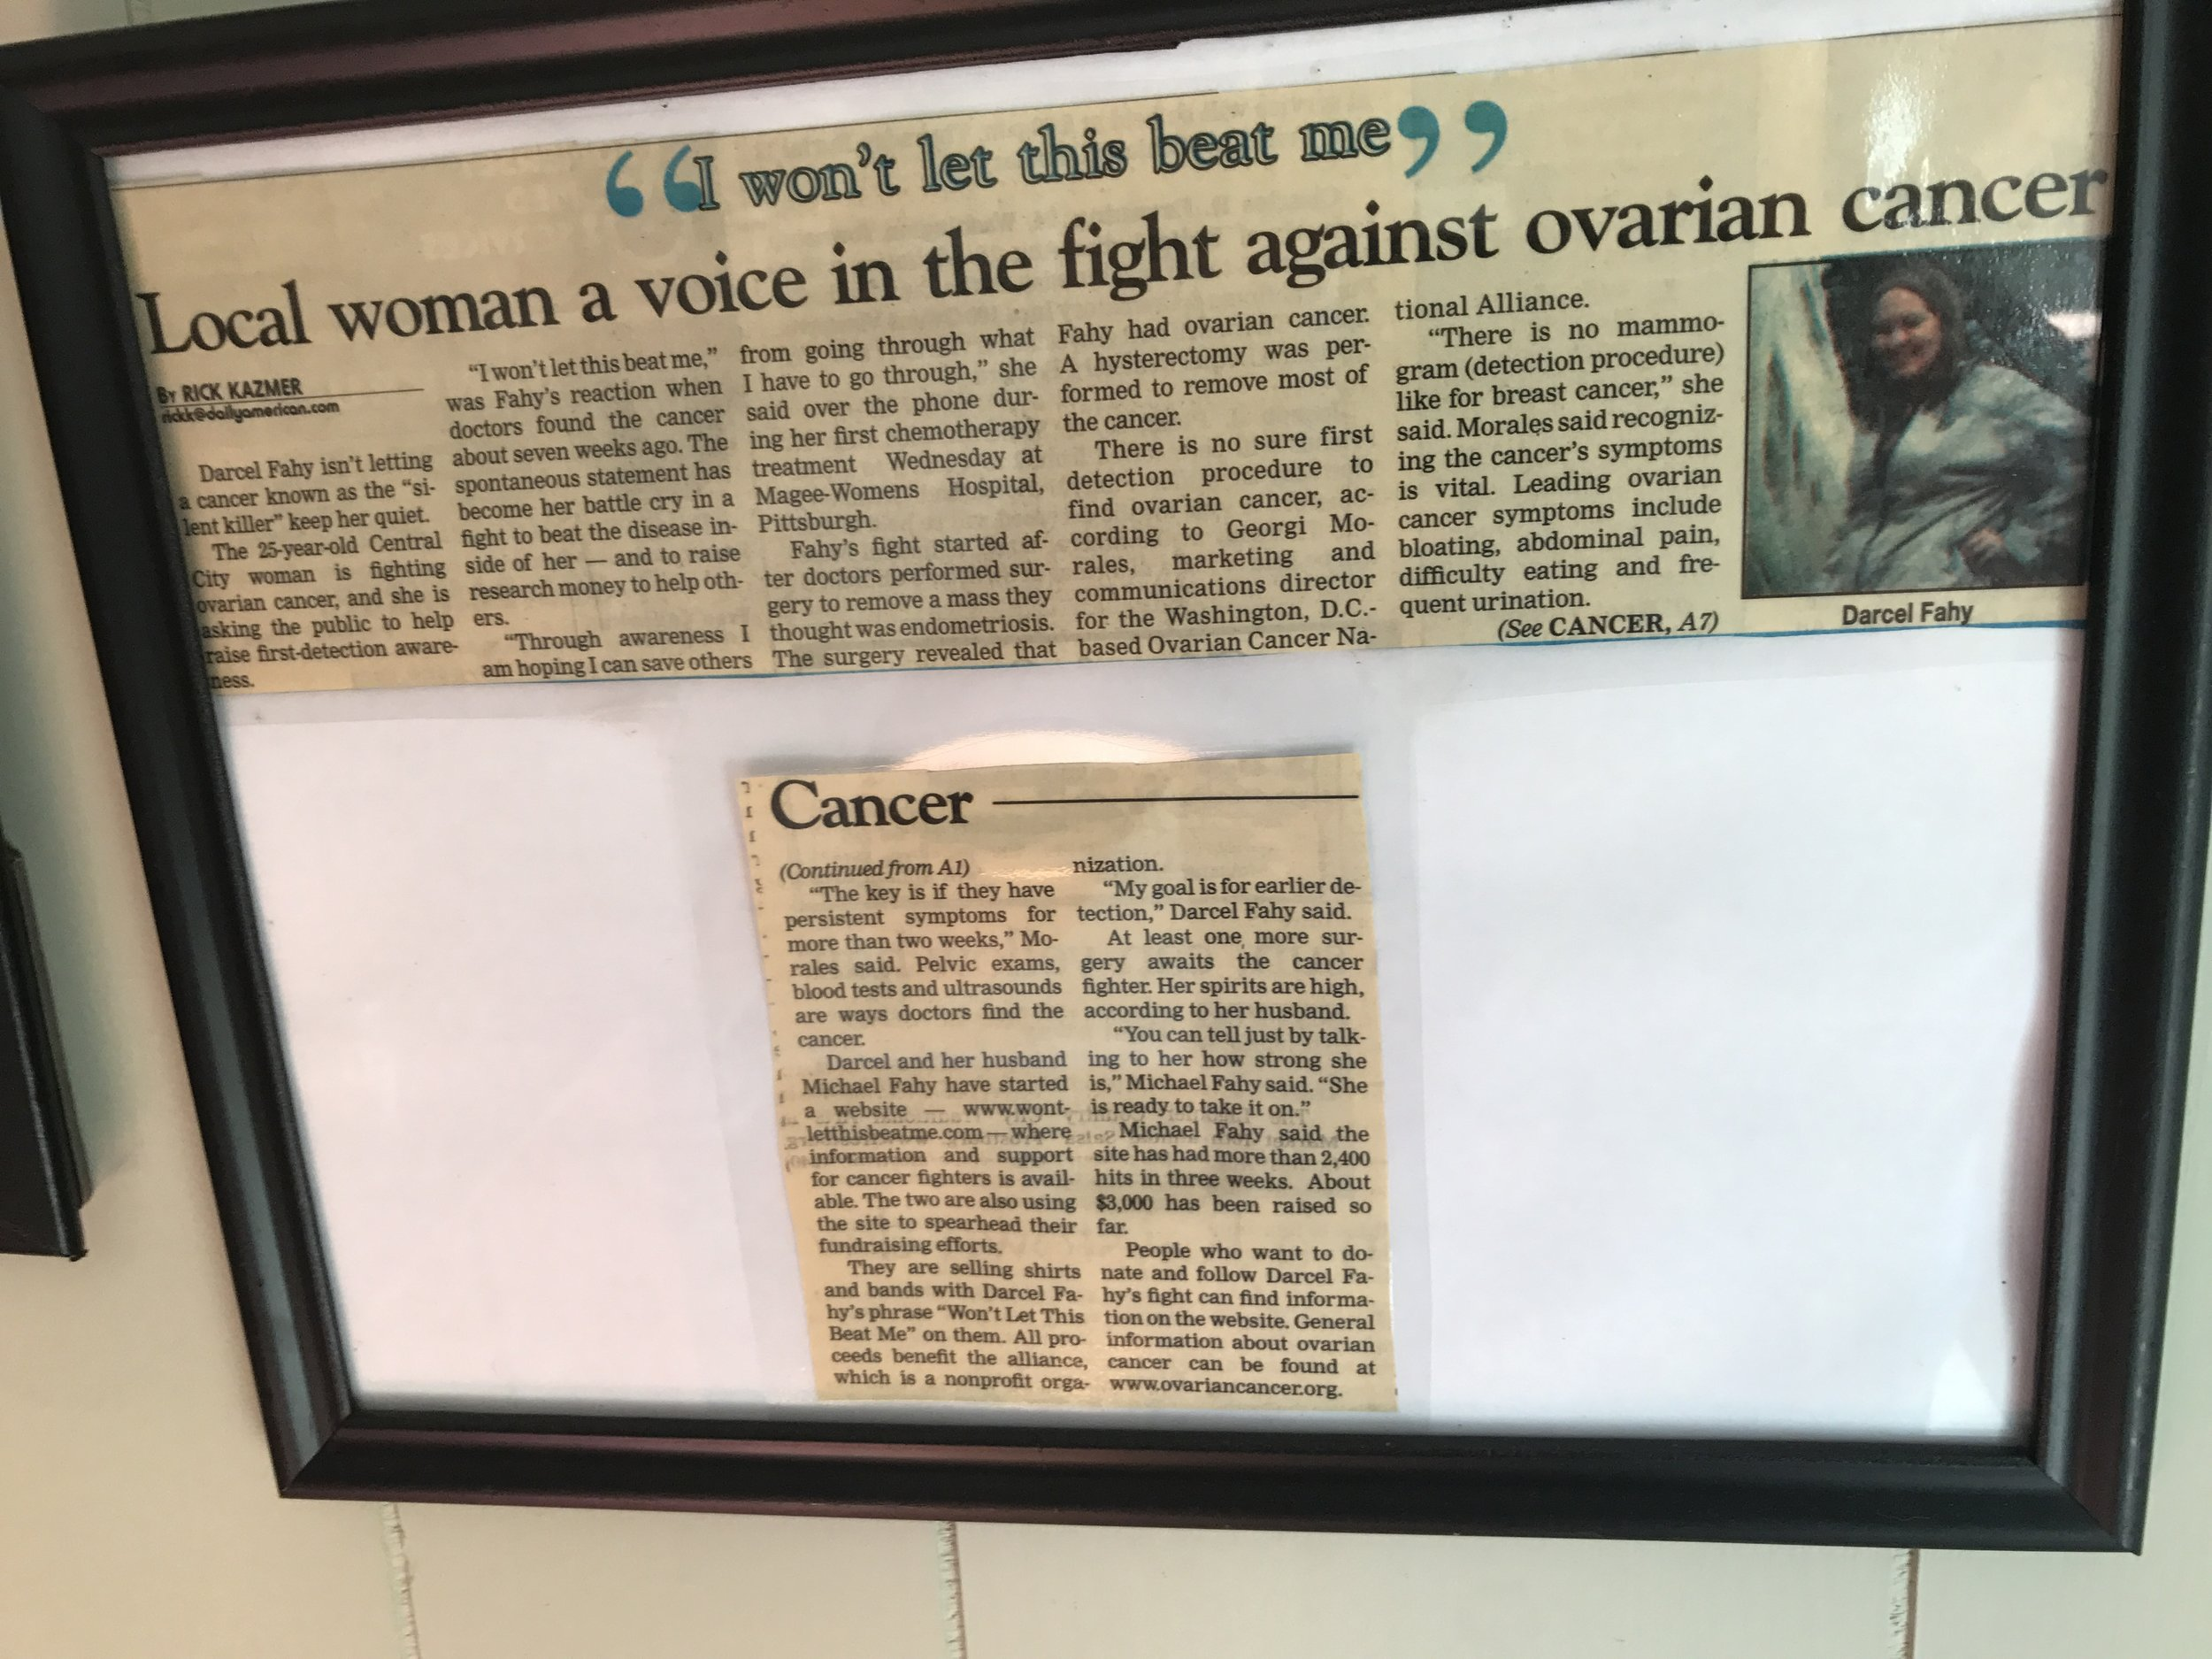 An article showing Darcel's motto and advocacy for awareness and defeat of ovarian cancer.